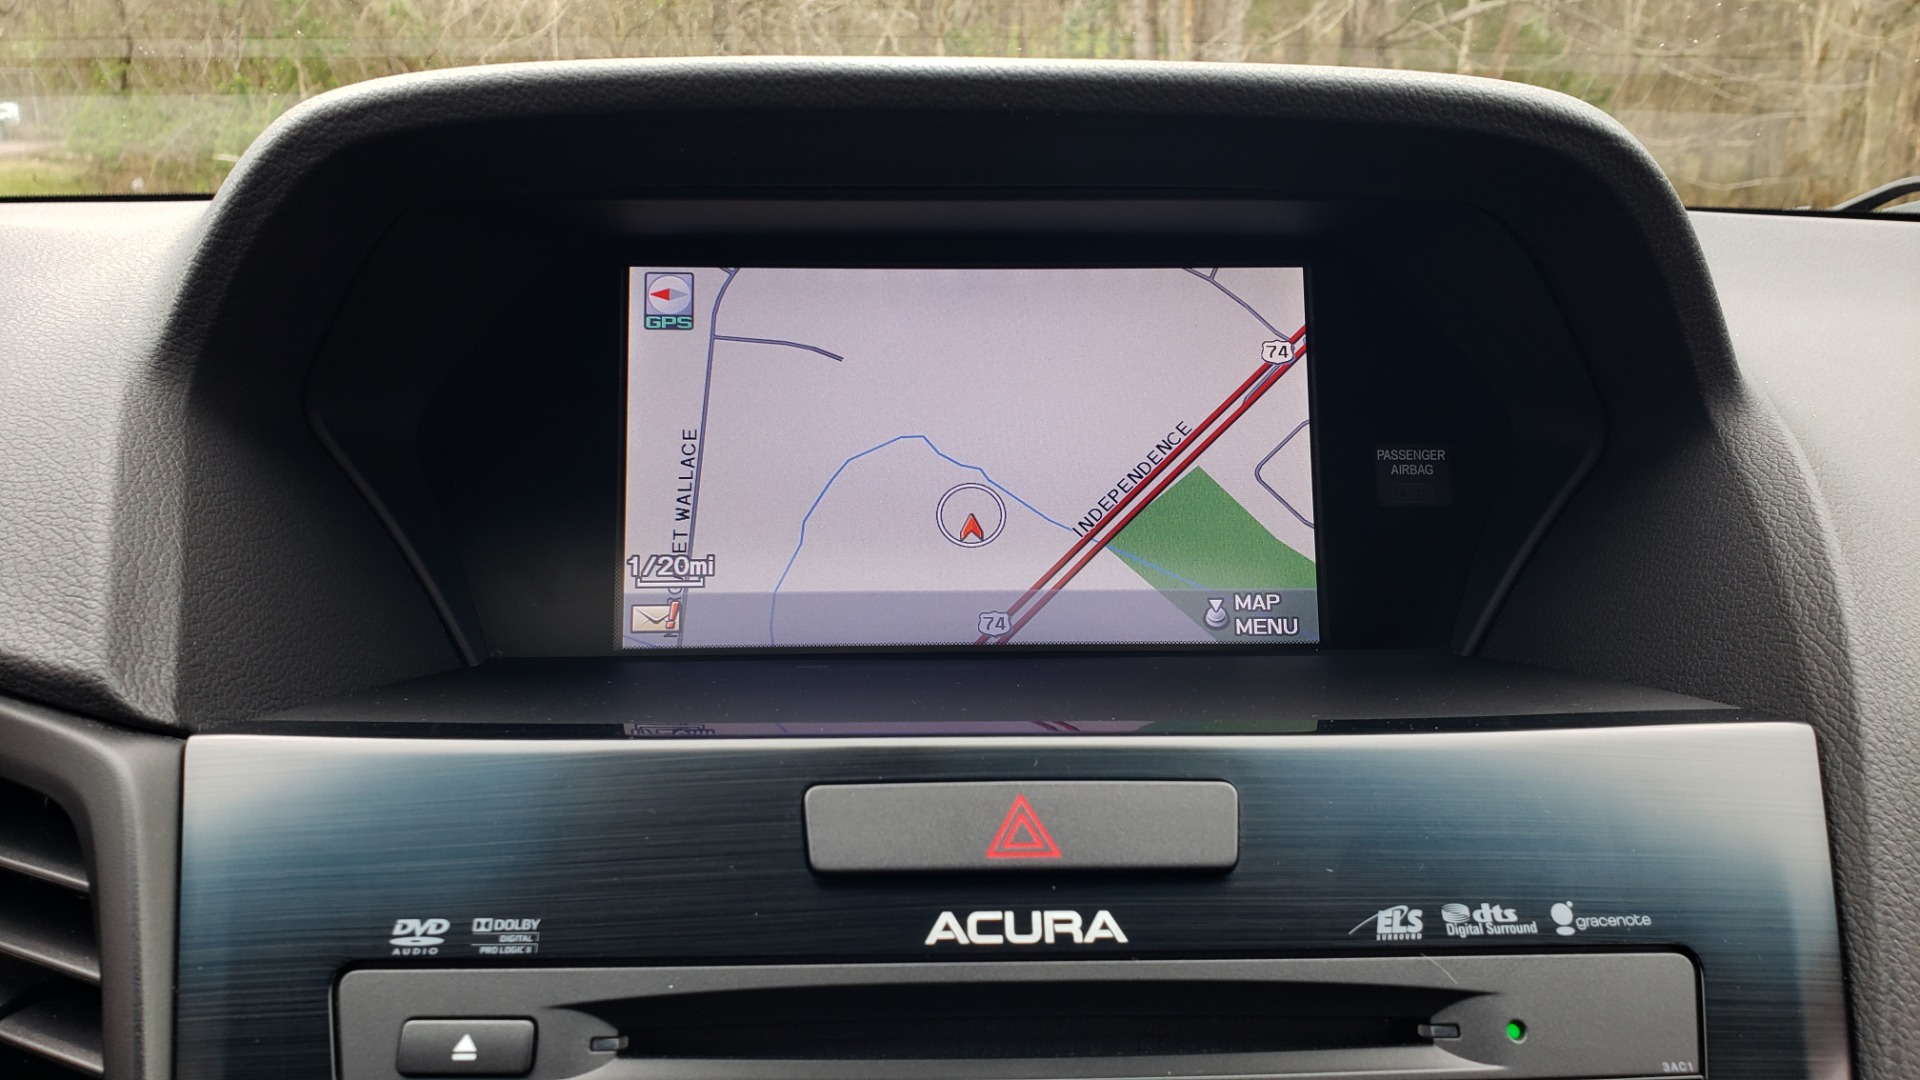 Used 2013 Acura ILX TECH PKG / SUNROOF / NAV / DUAL-ZONE A/C / REARVIEW for sale Sold at Formula Imports in Charlotte NC 28227 42